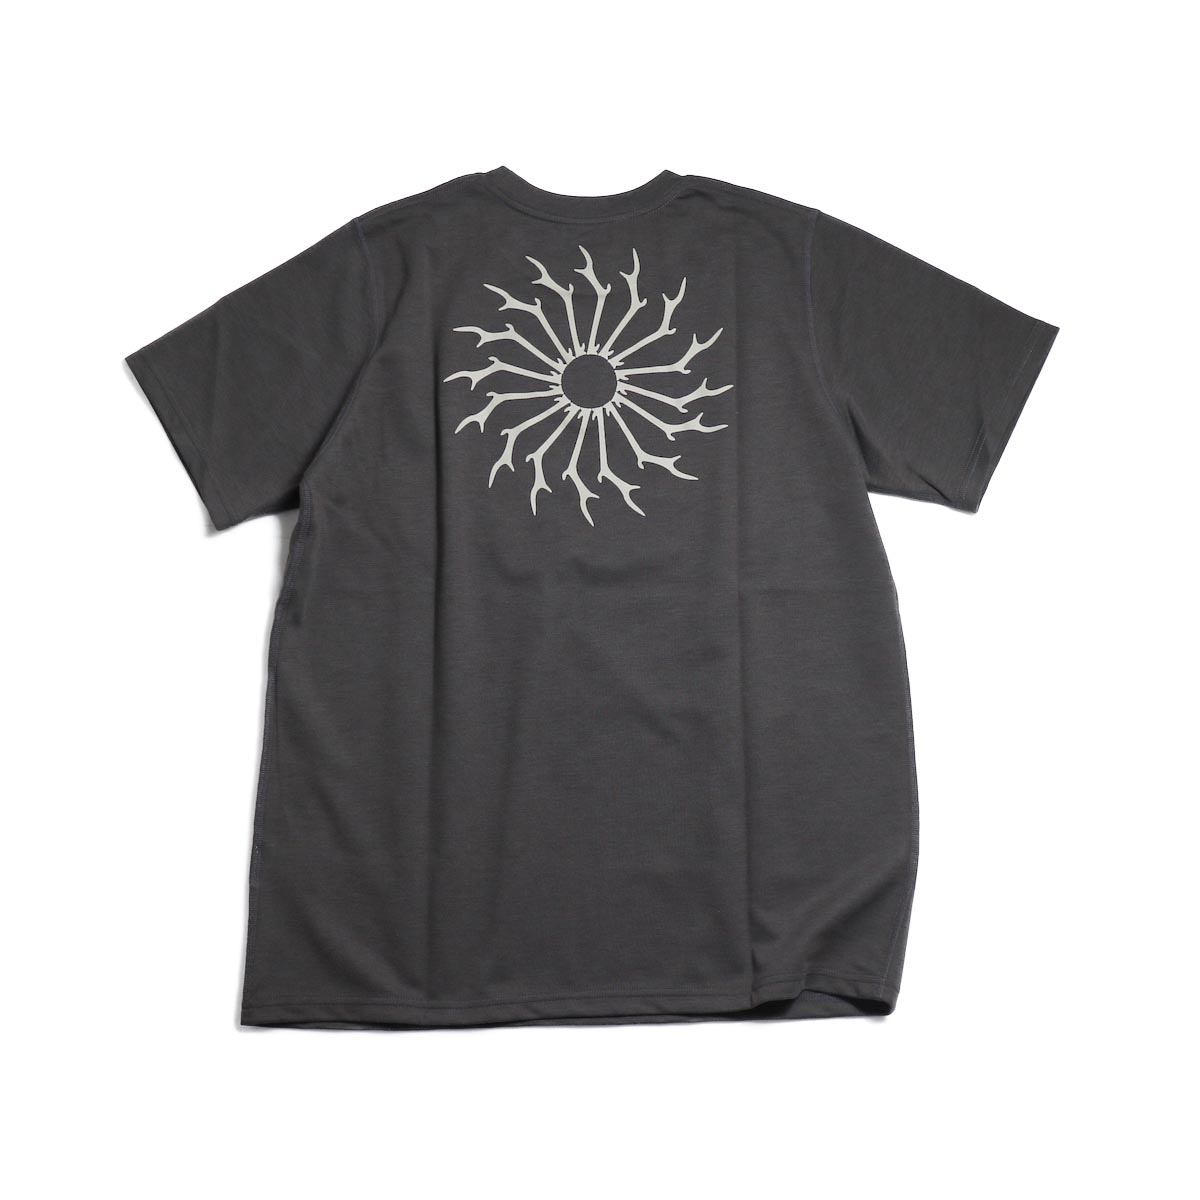 SOUTH2 WEST8 / Round Pocket Tee (Circle Horn) -Charcoal